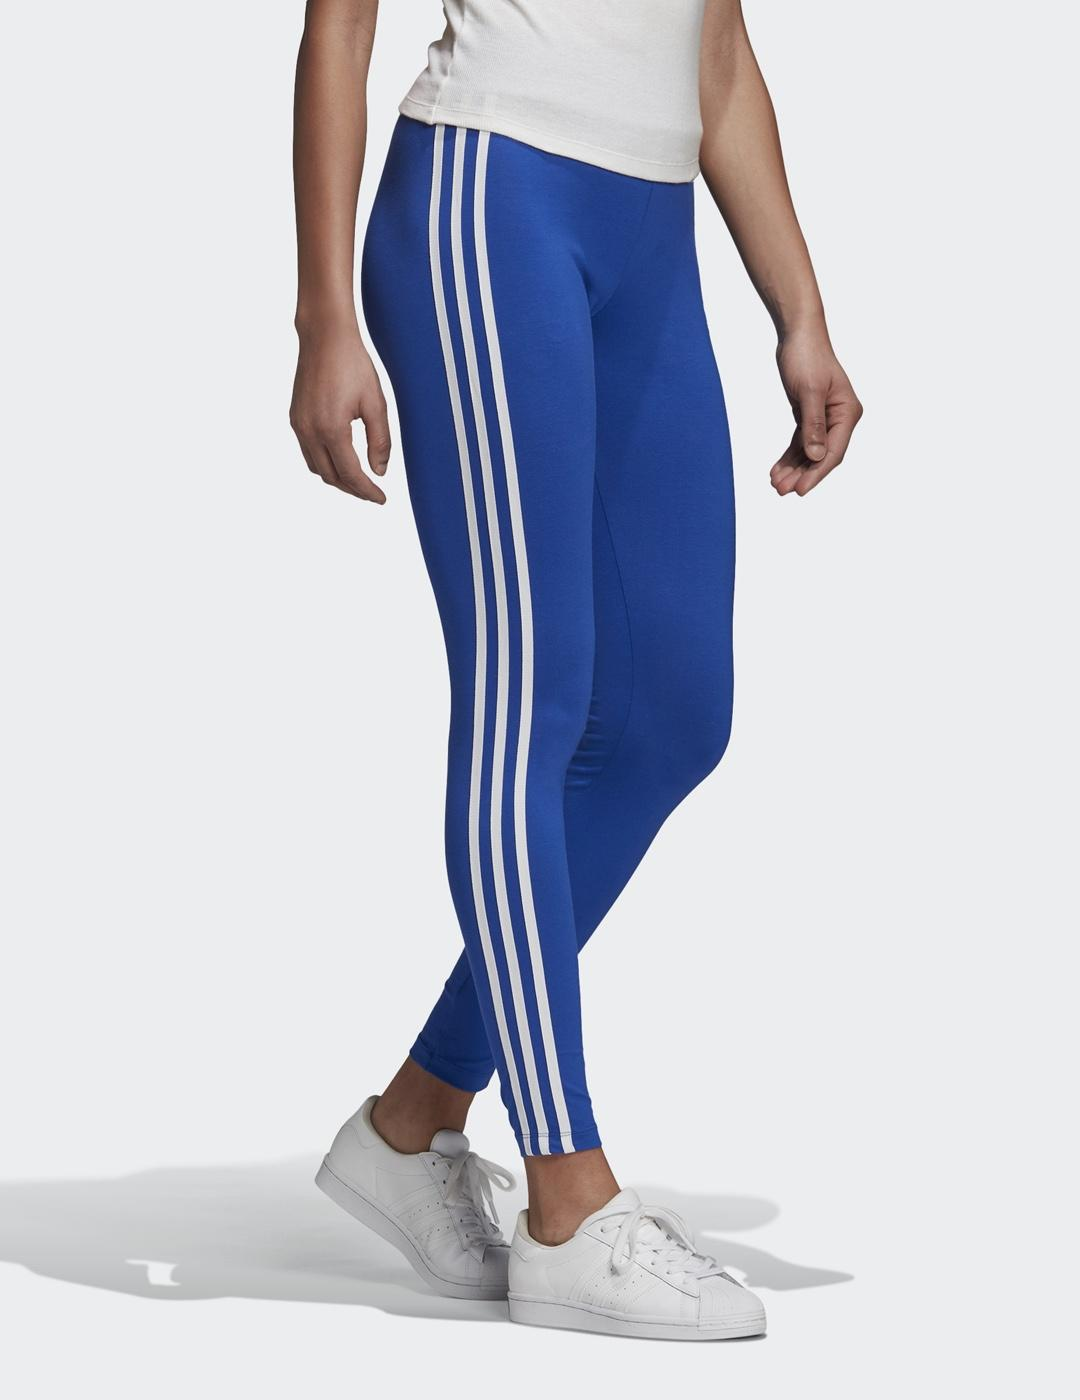 Leggins Adidas 3 STR TIGHT - Azul royal